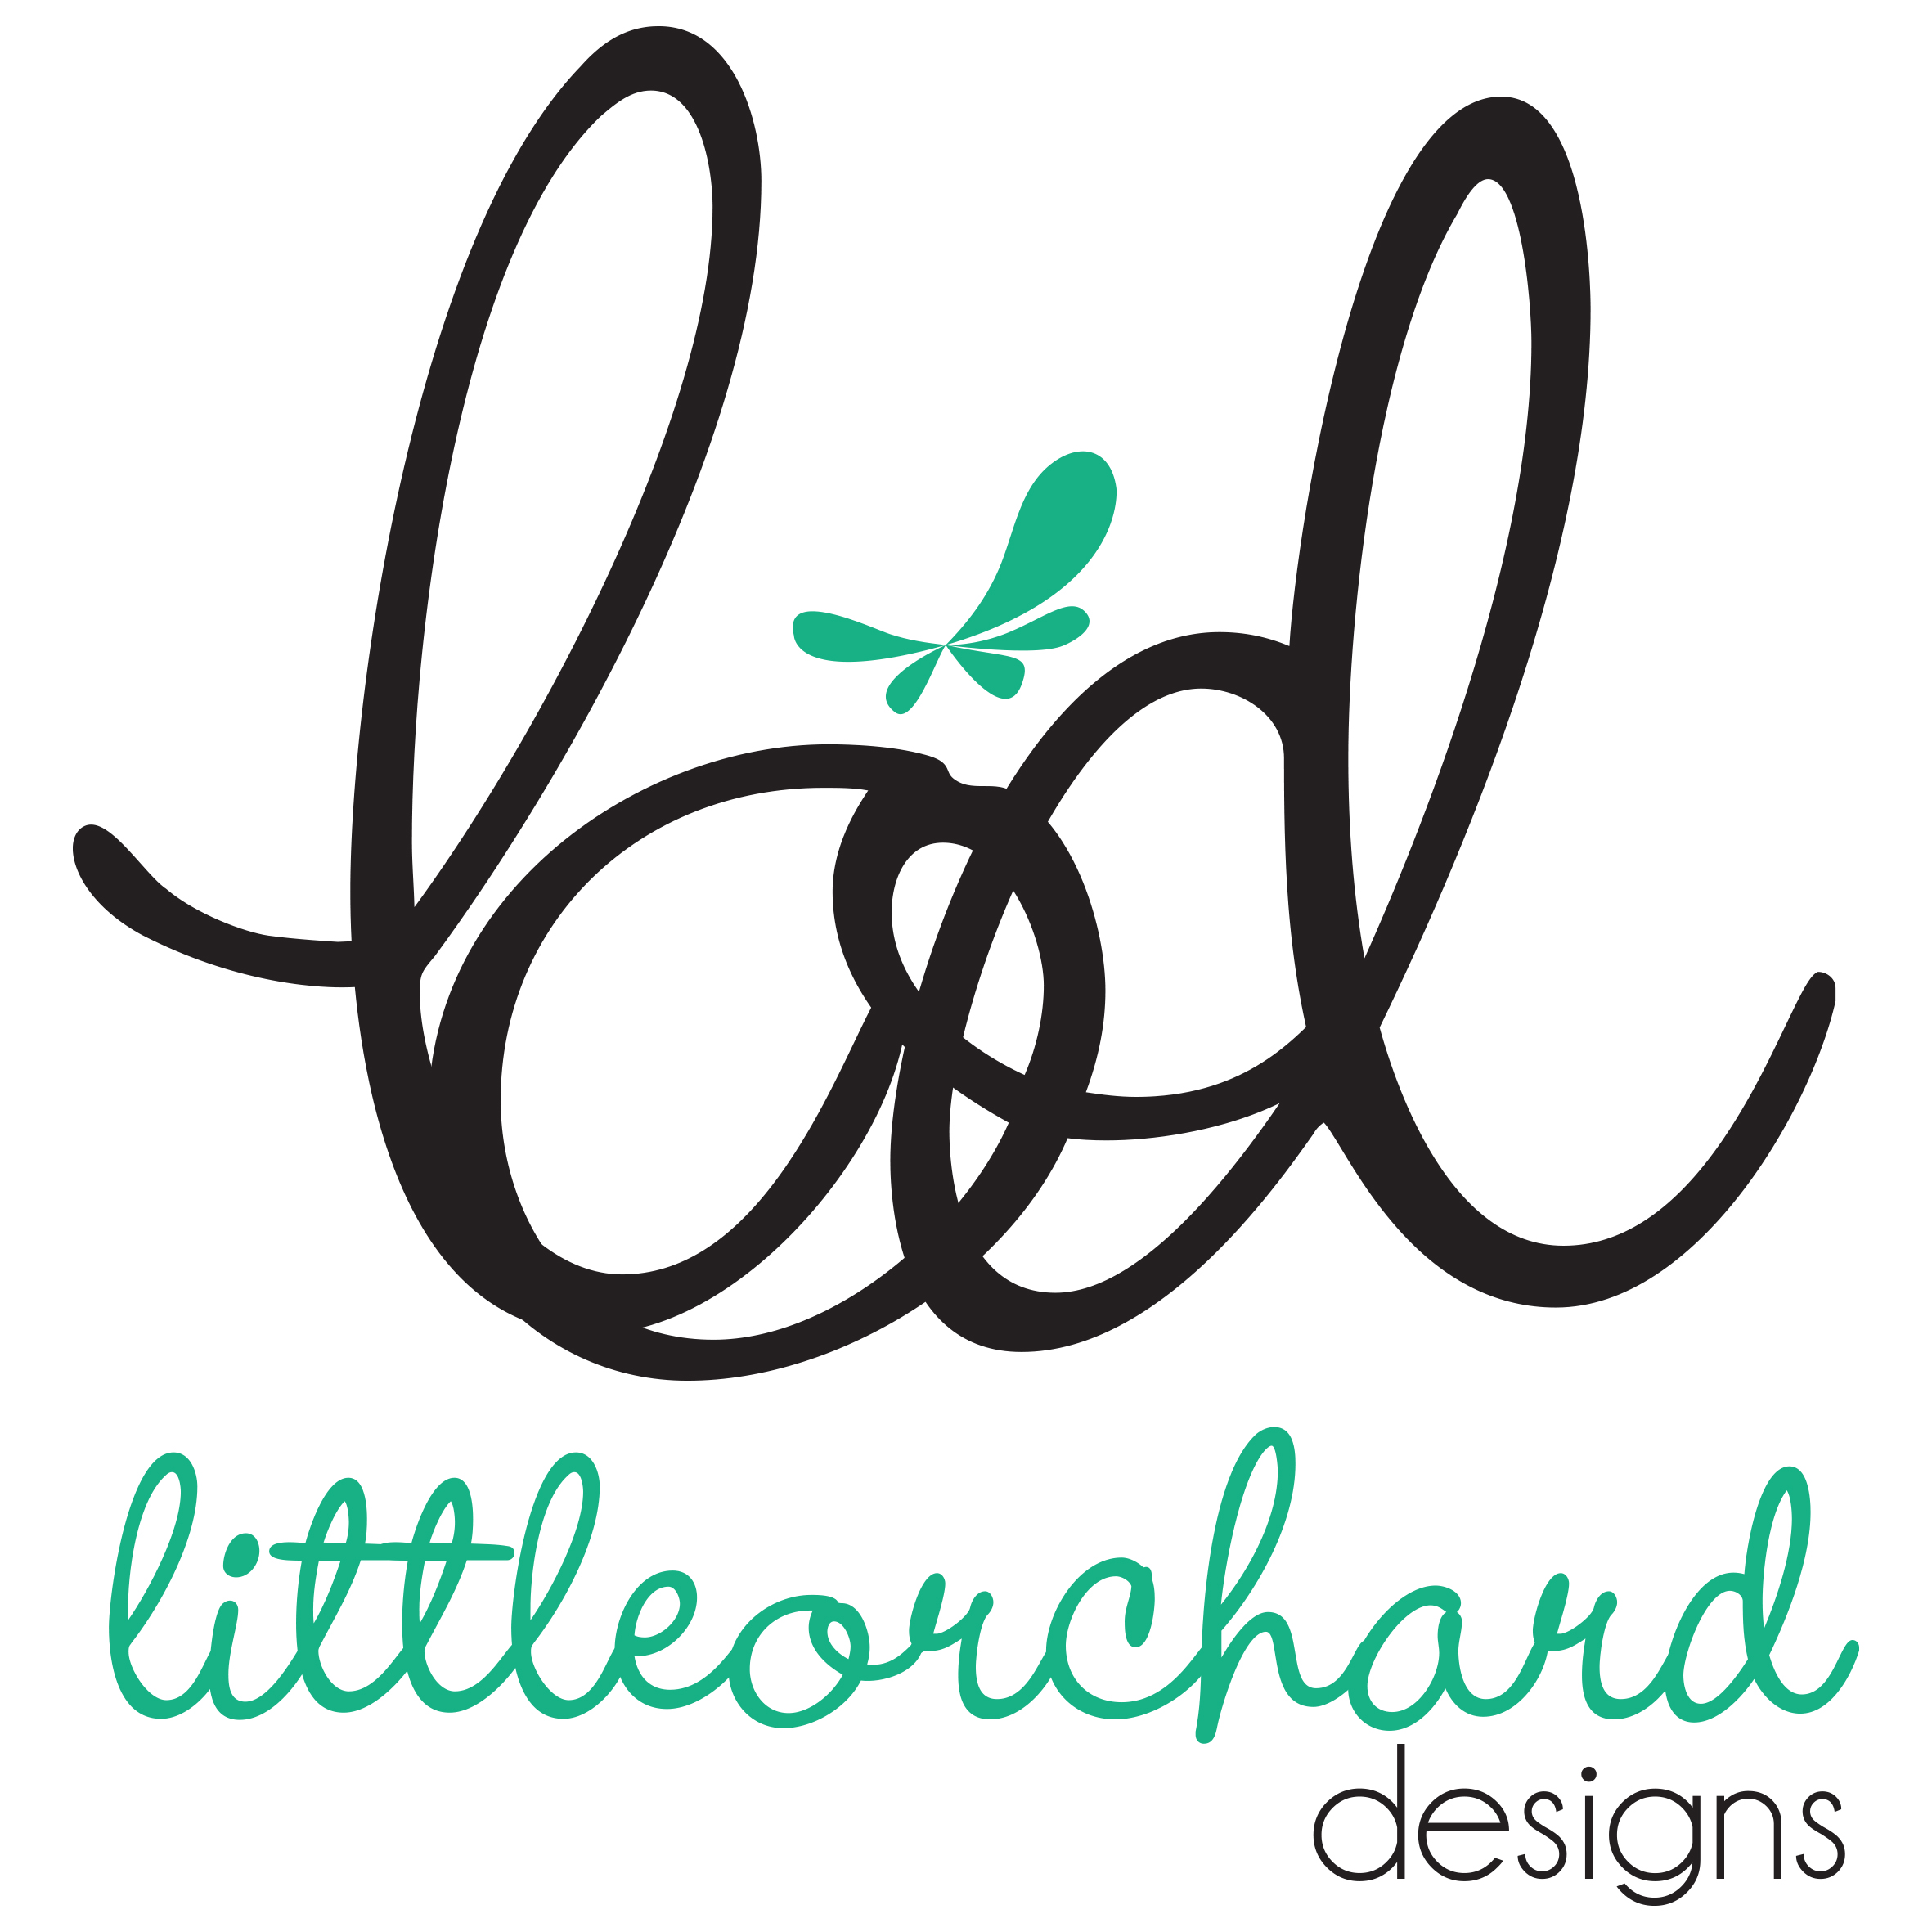 Little Orchard Designs